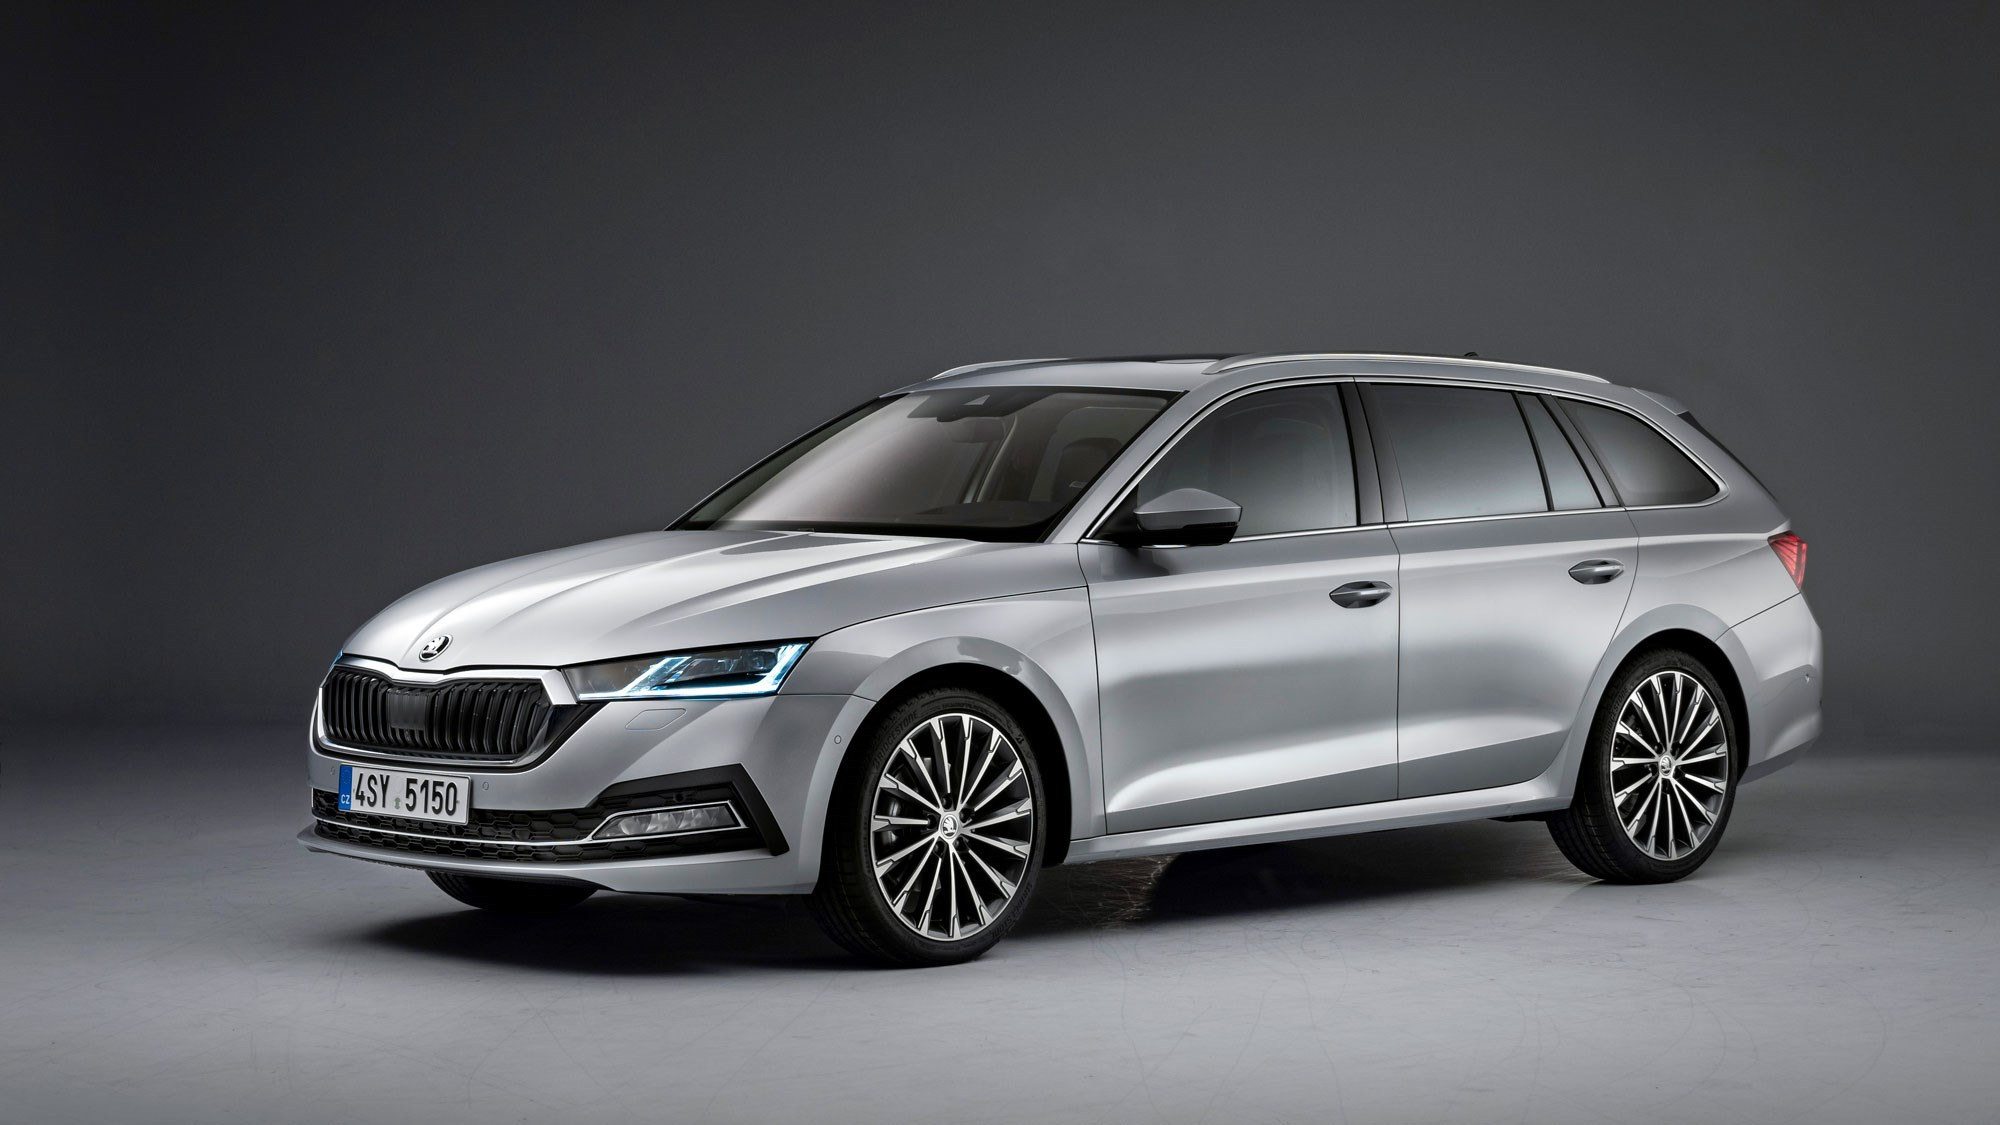 Skoda Octavia Breaks Cover; Gets More Tech & Practicality